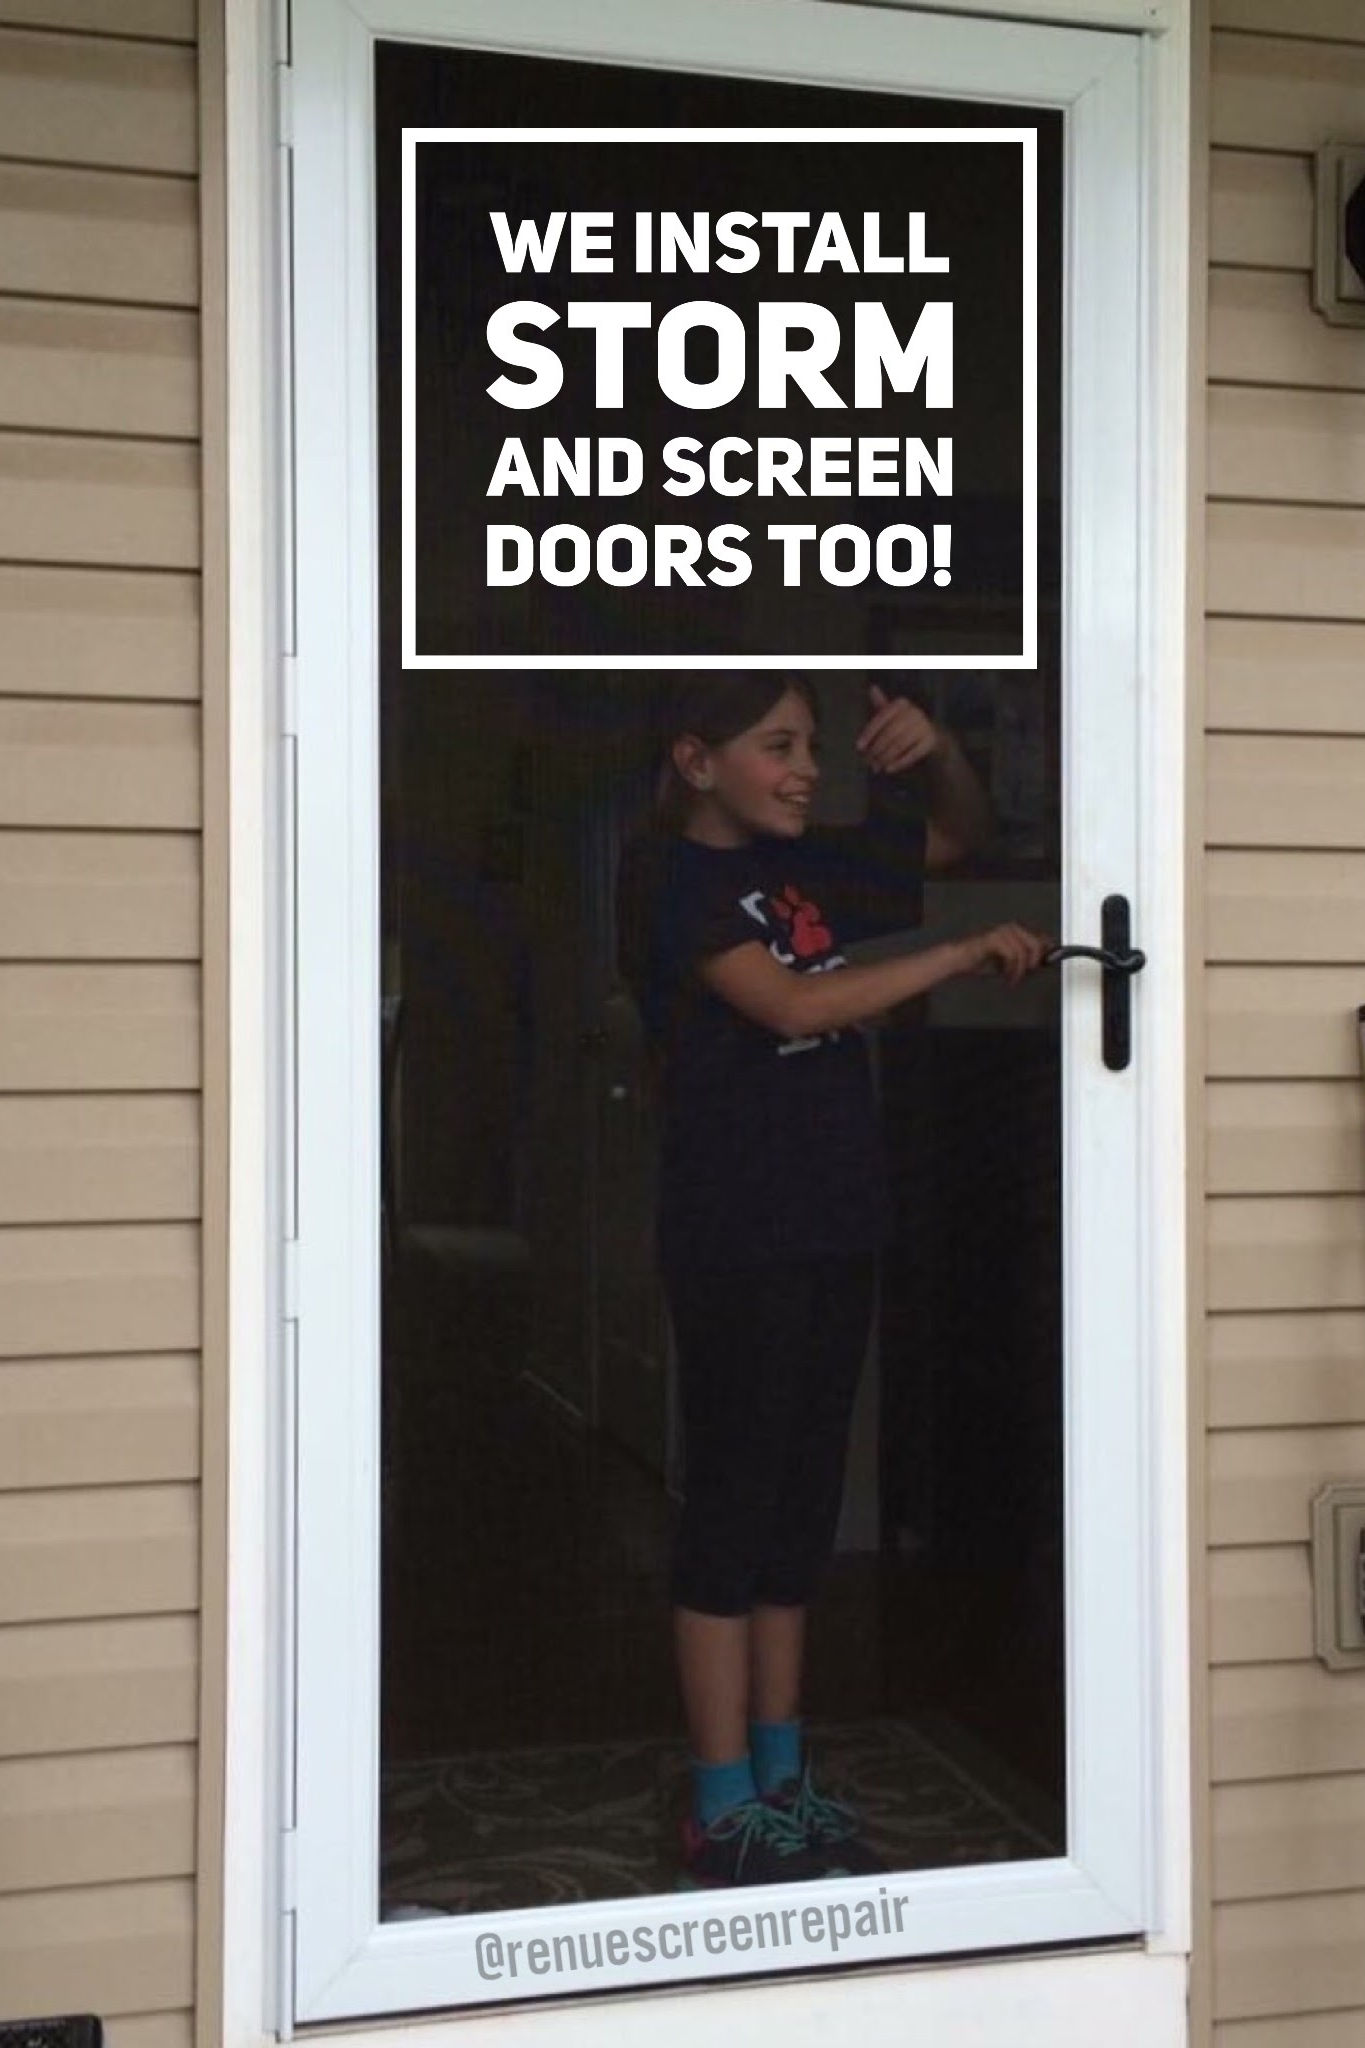 Renue Glass and Screen Repair Security Storm Door Pella Larson EMCO Andersen